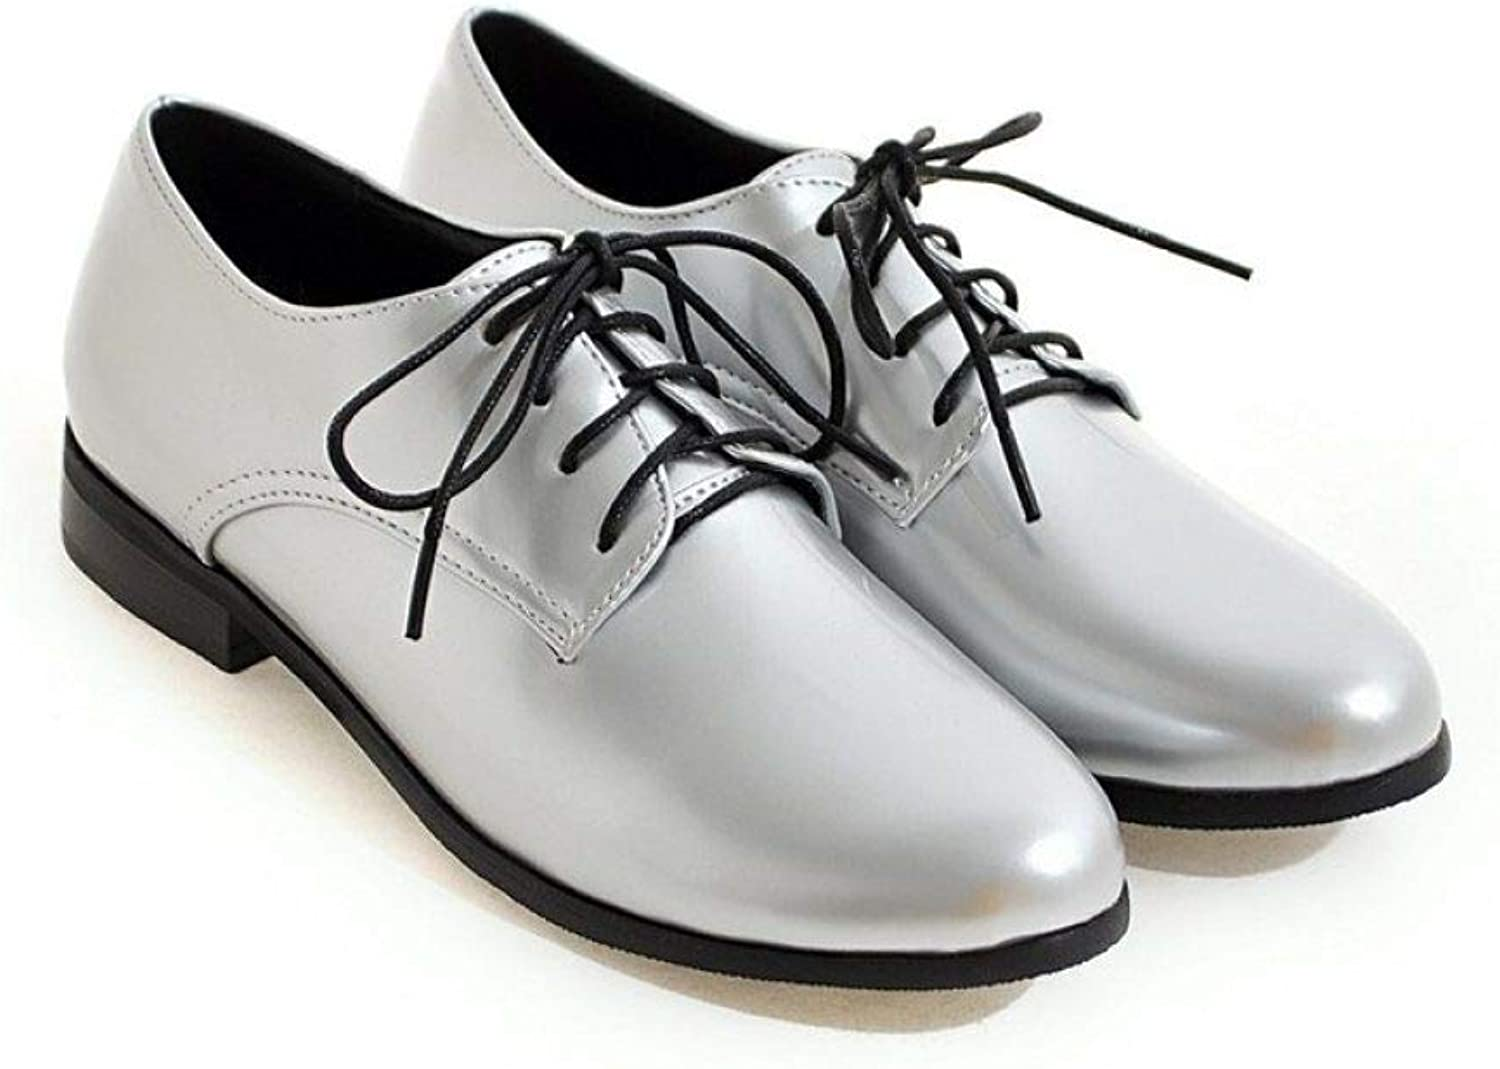 Women's Patent Leather Flat Oxfords Lace Up Round Toe Plain Tone Fashion Dress shoes